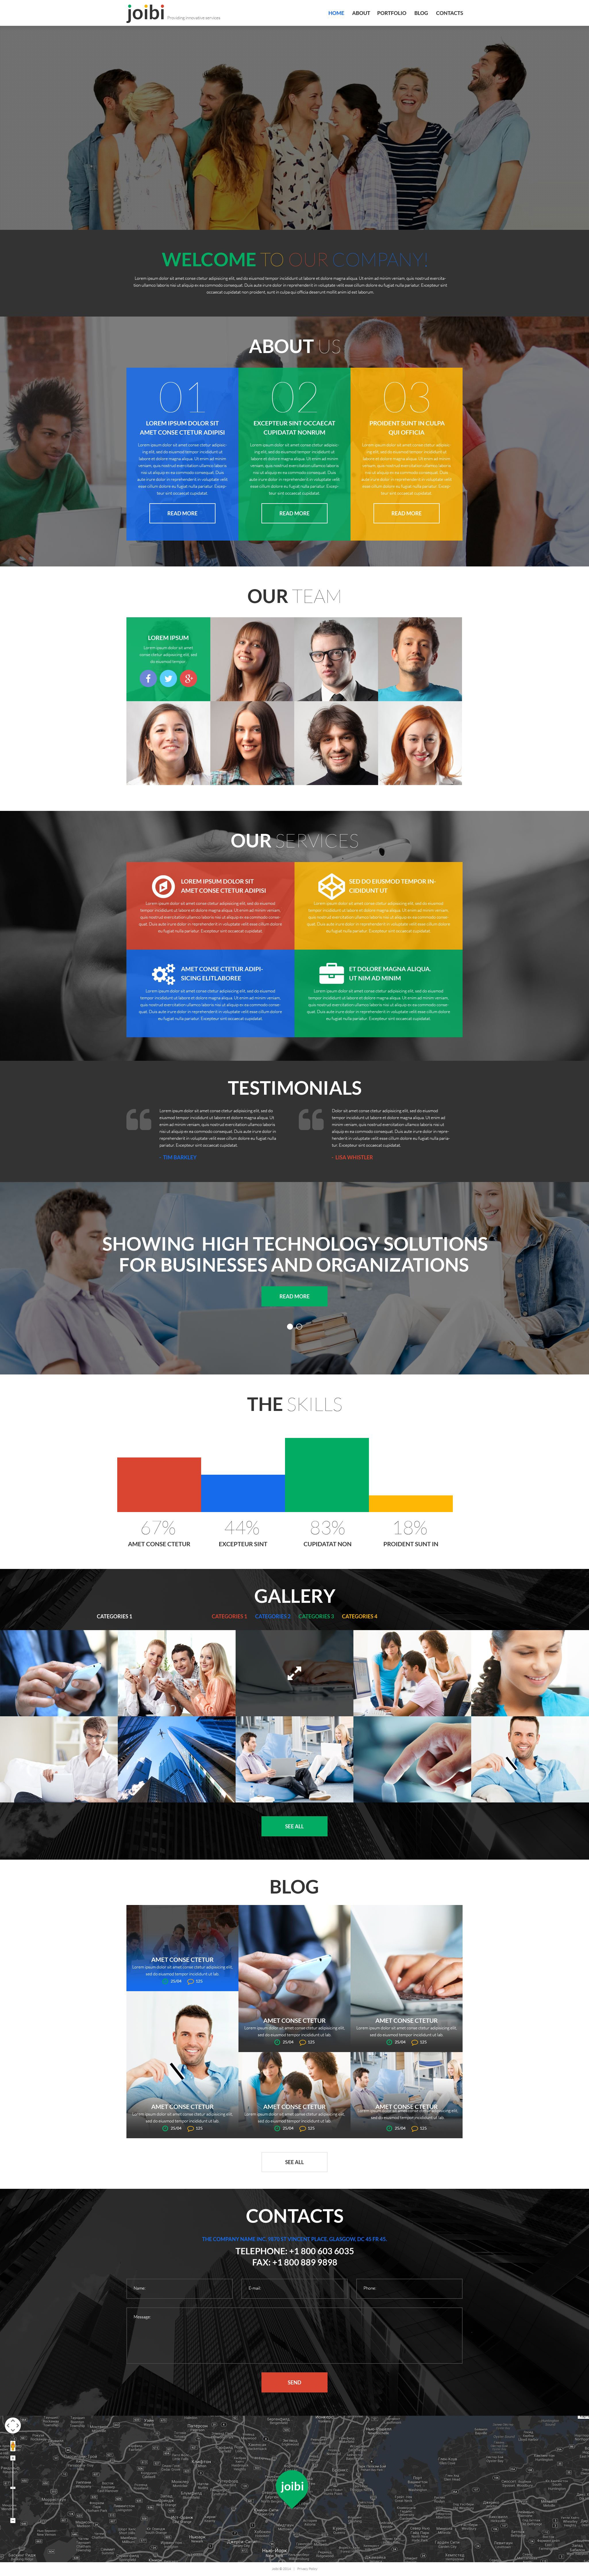 Business Services Promotion WordPress Theme - screenshot